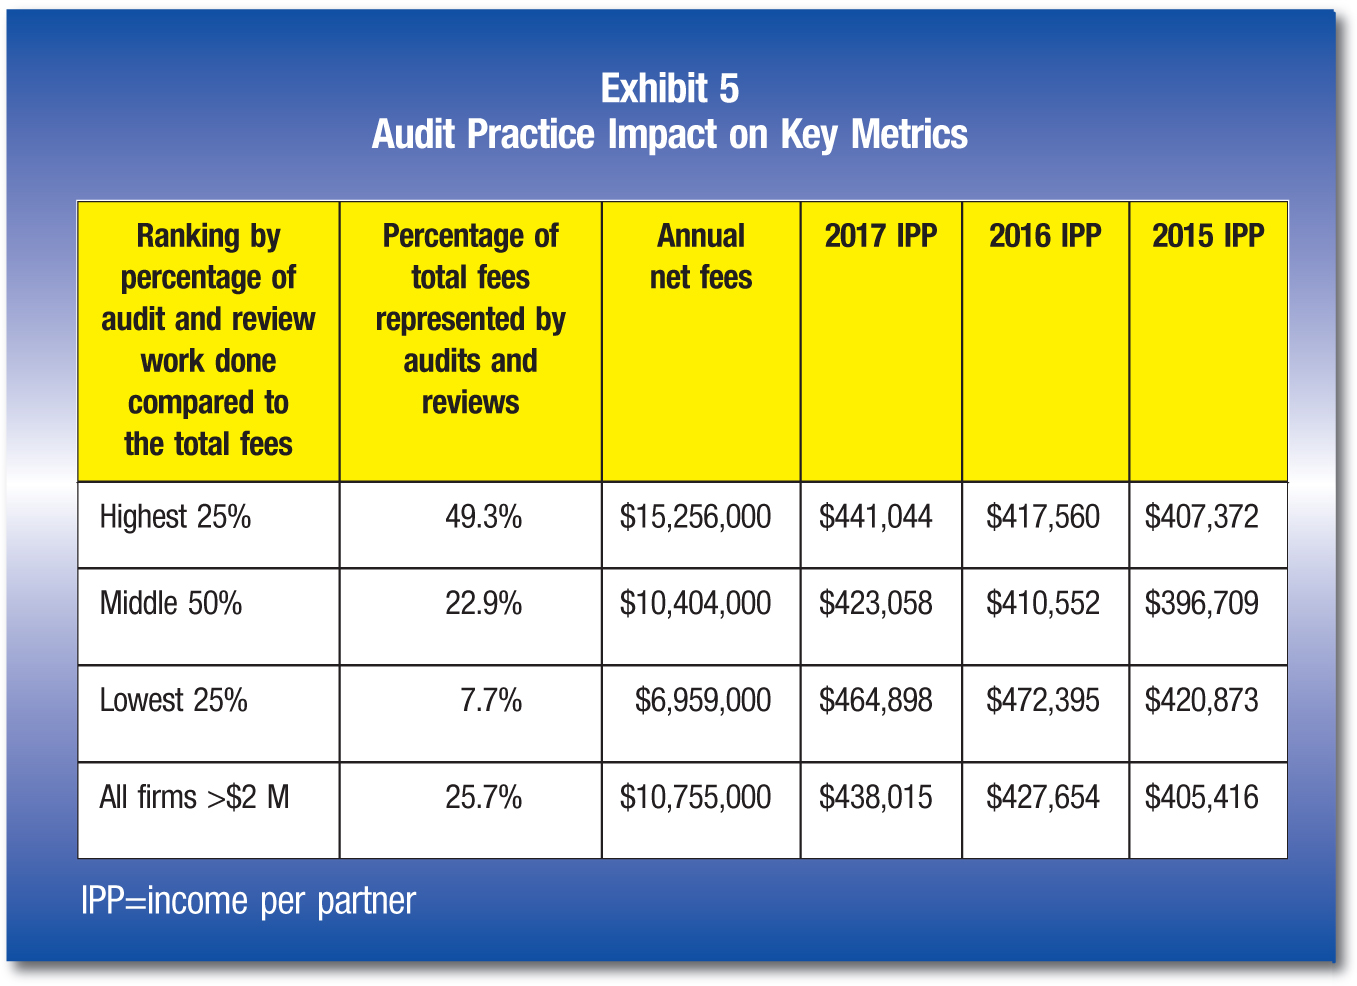 Ranking by percentage of audit and review work done compared to the total fees; Percentage of total fees represented by audits and reviews; Annual net fees; 2017 IPP; 2016 IPP; 2015 IPP Highest 25%; 49.3%; $15,256,000; $441,044; $417,560; $407,372 Middle 50%; 22.9%; $10,404,000; $423,058; $410,552; $396,709 Lowest 25%; 7.7%; $6,959,000; $464,898; $472,395; $420,873 All firms >$2 M; 25.7%; $10,755,000; $438,015; $427,654; $405,416 IPP=income per partner